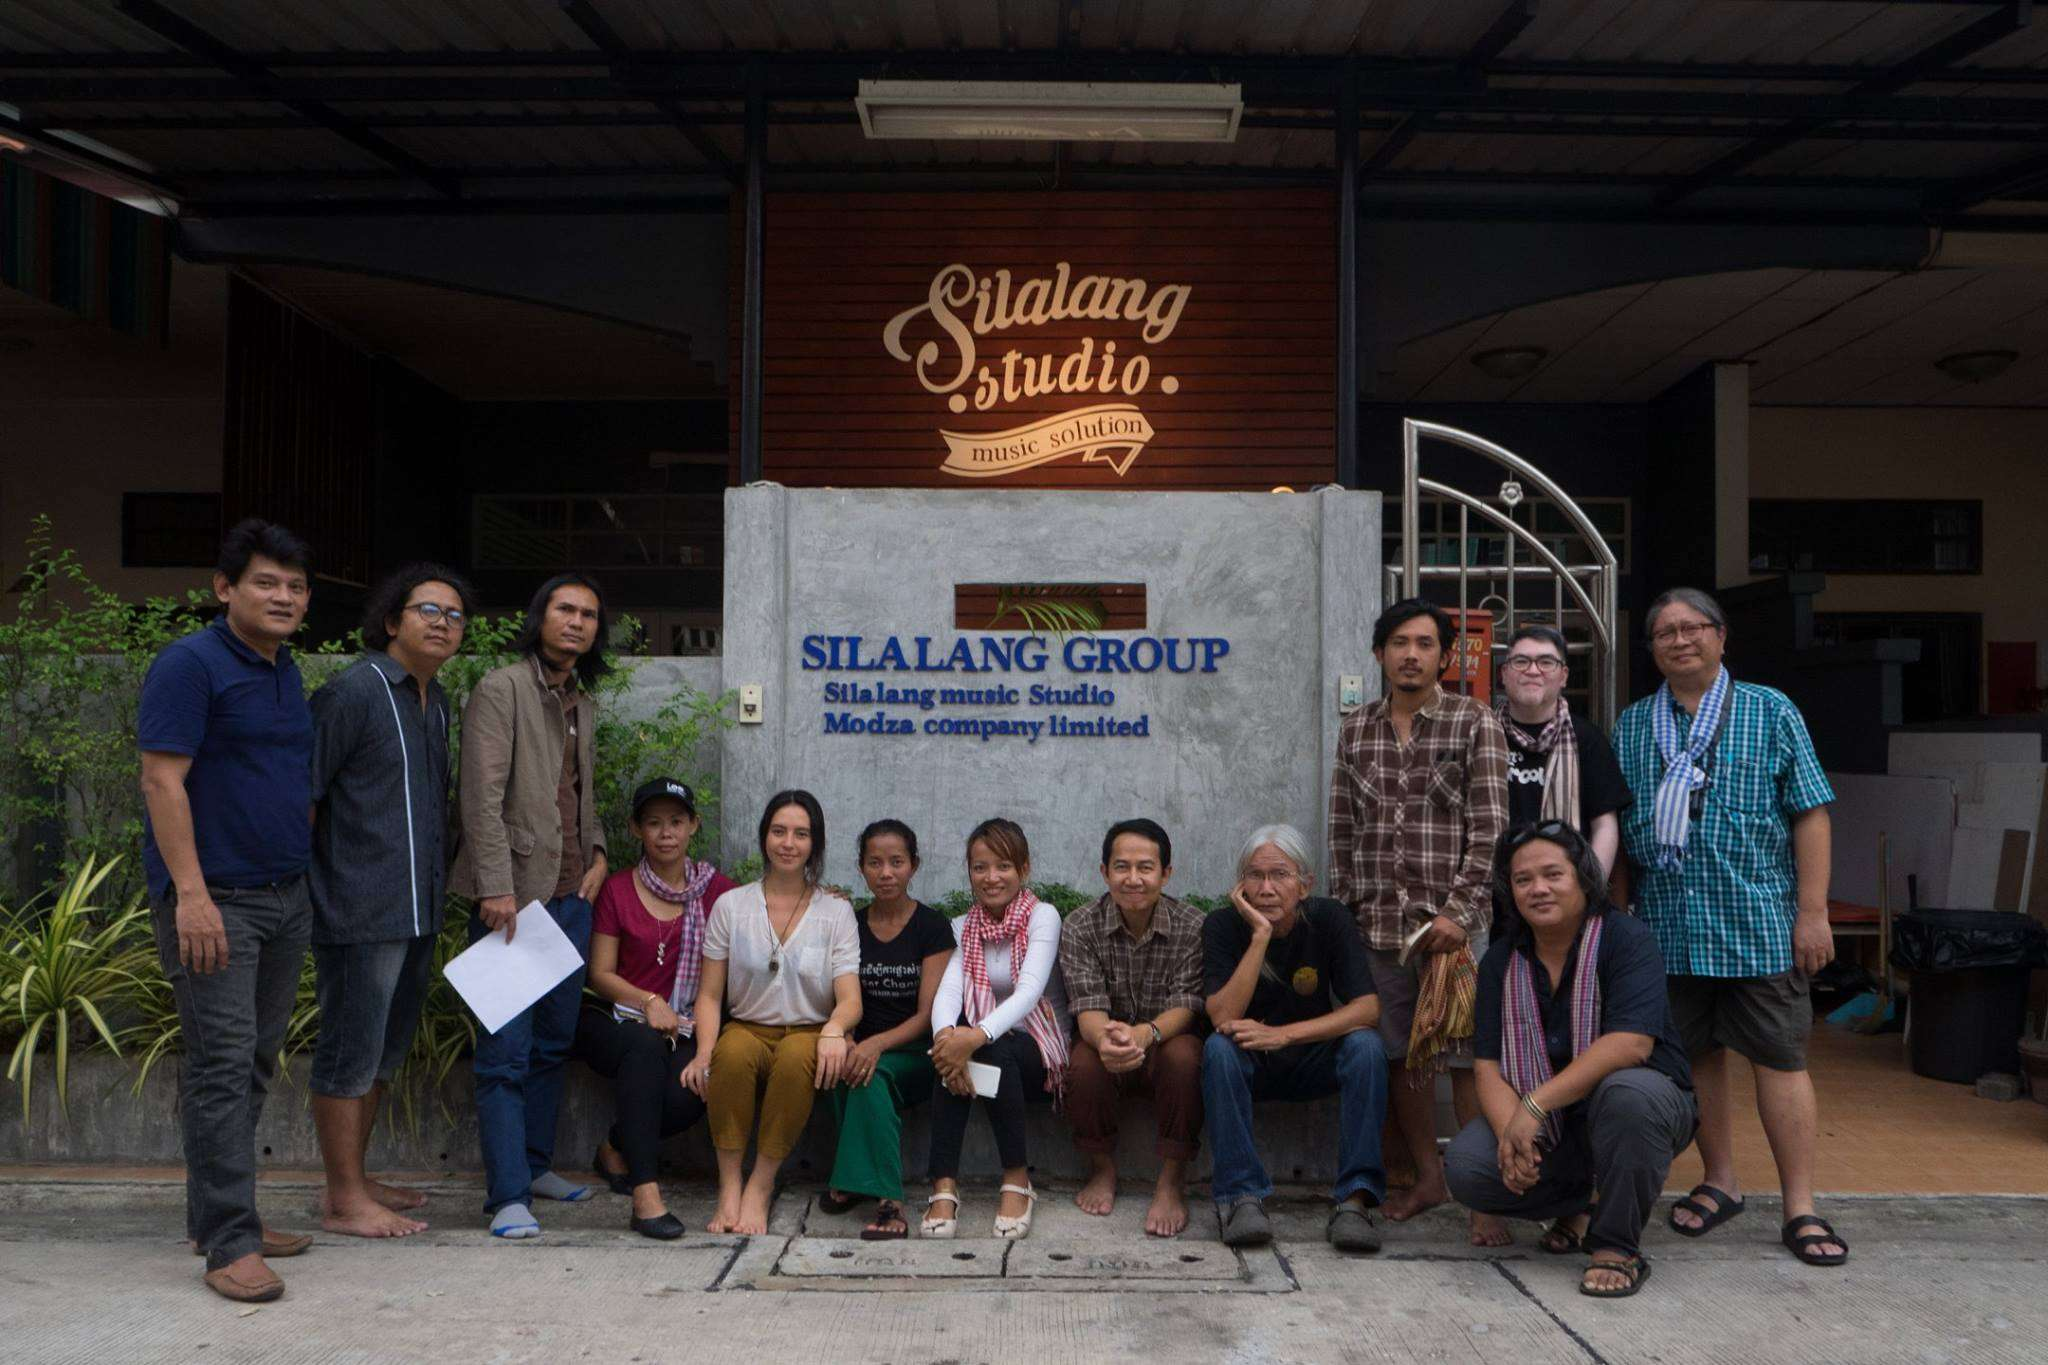 Musicians from Southeast Asia come together to collaborate on songs that amplify and support peoples' struggles across the region